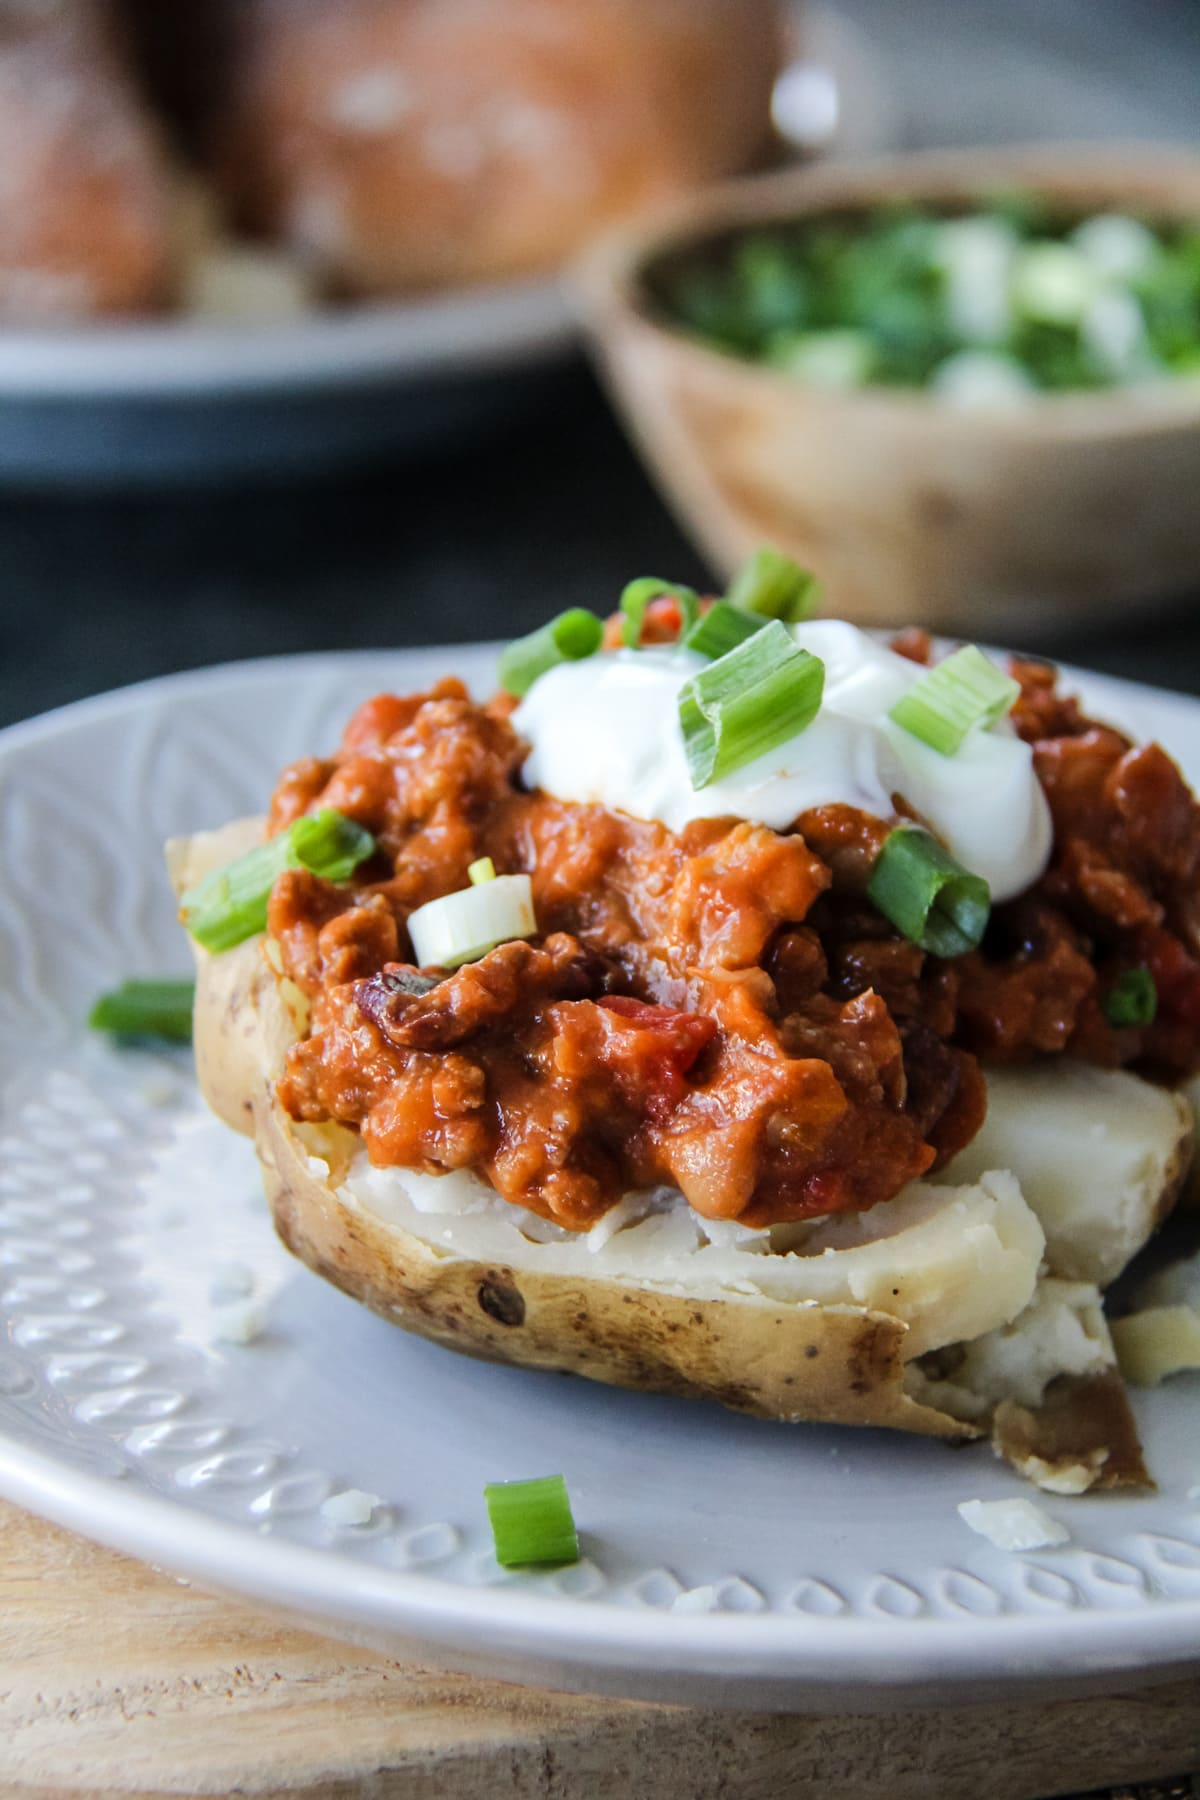 Beef Chili and Baked Potatoes